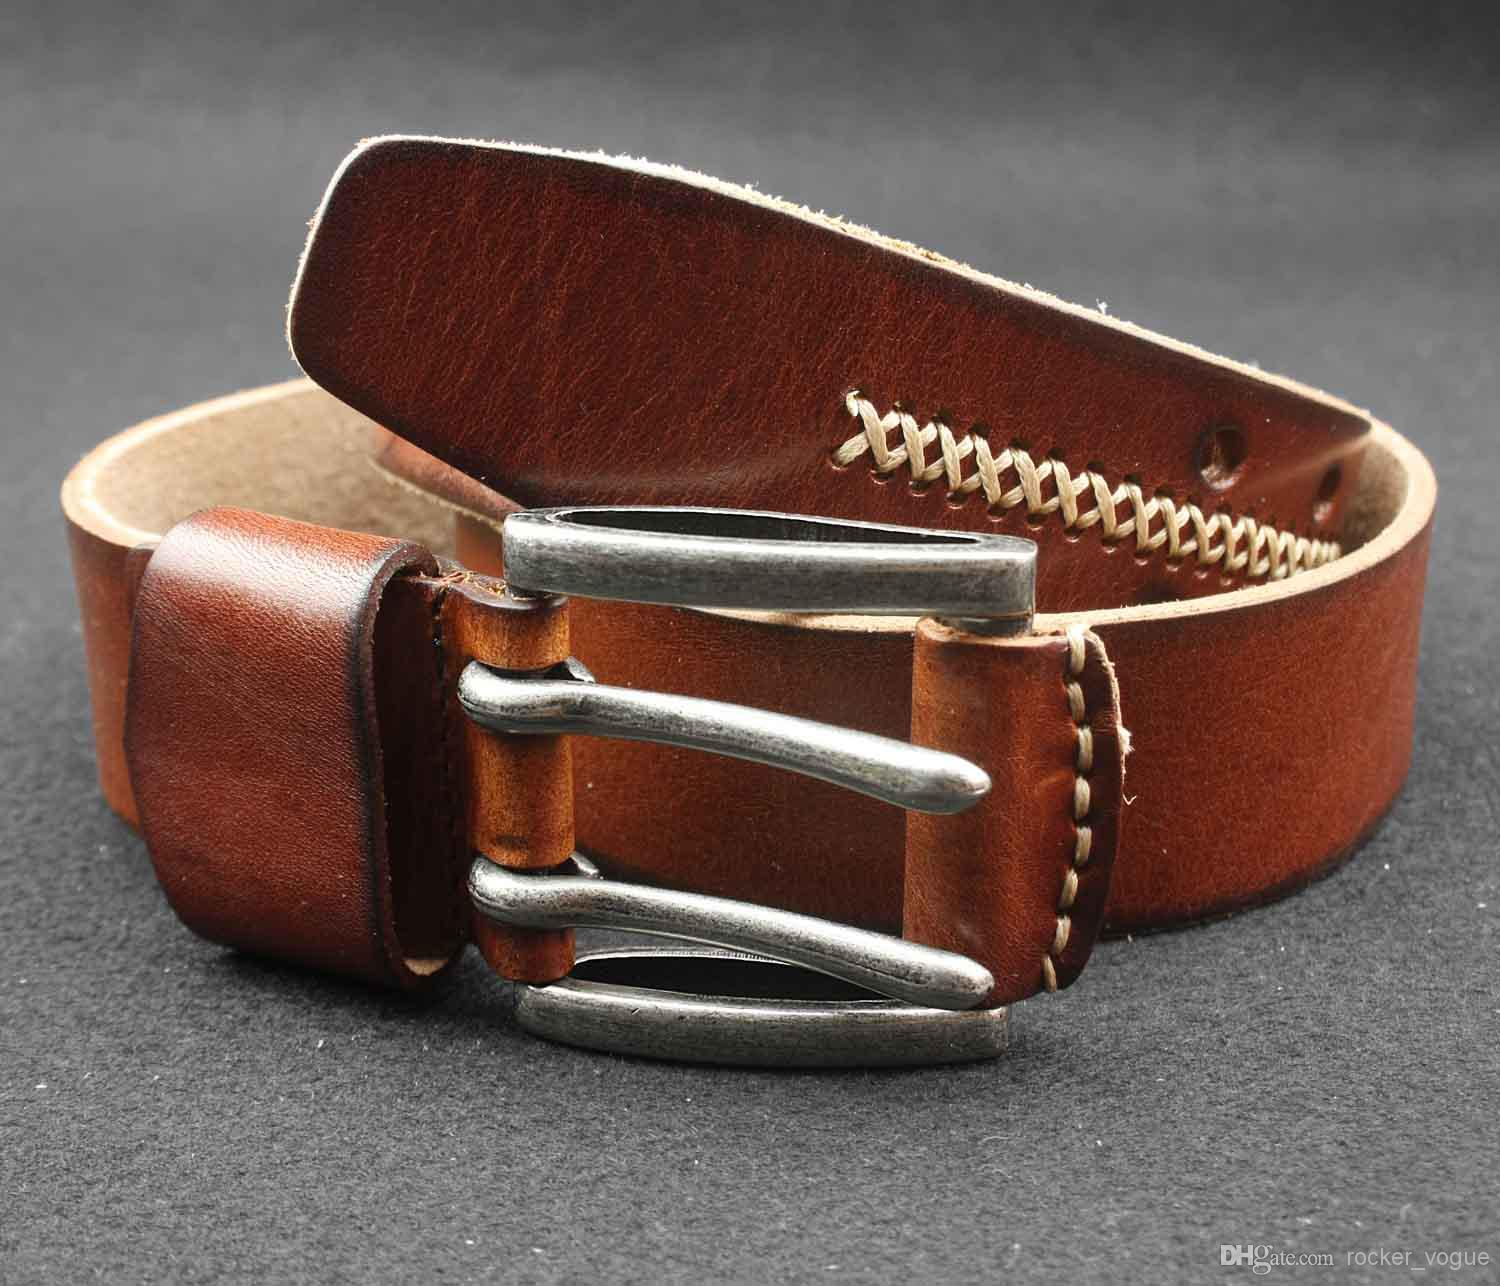 Mens 2 Double Holes Dress Casual Leather Belt 2prong Roller ...